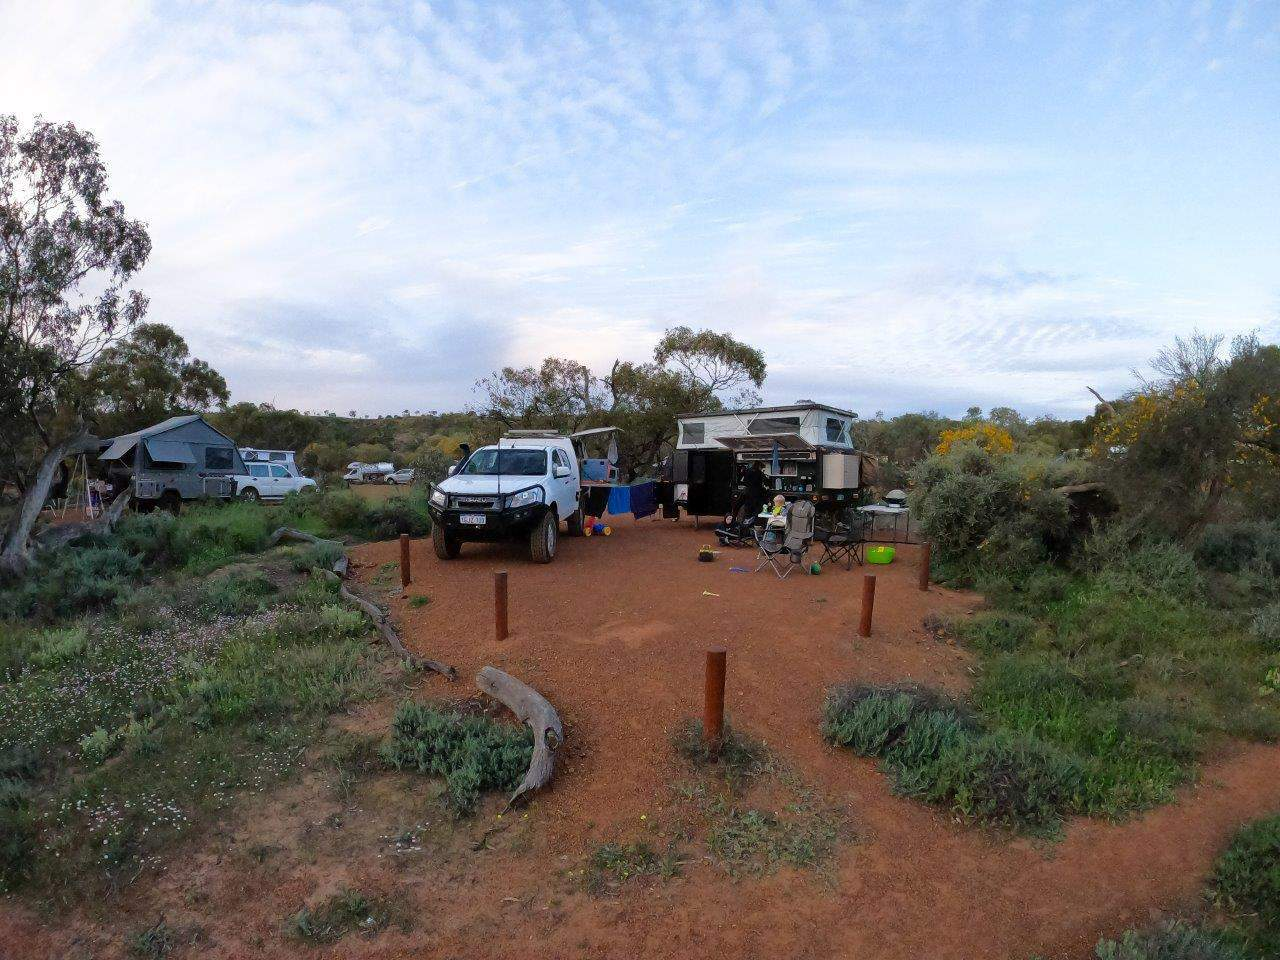 Coalseam camp ground